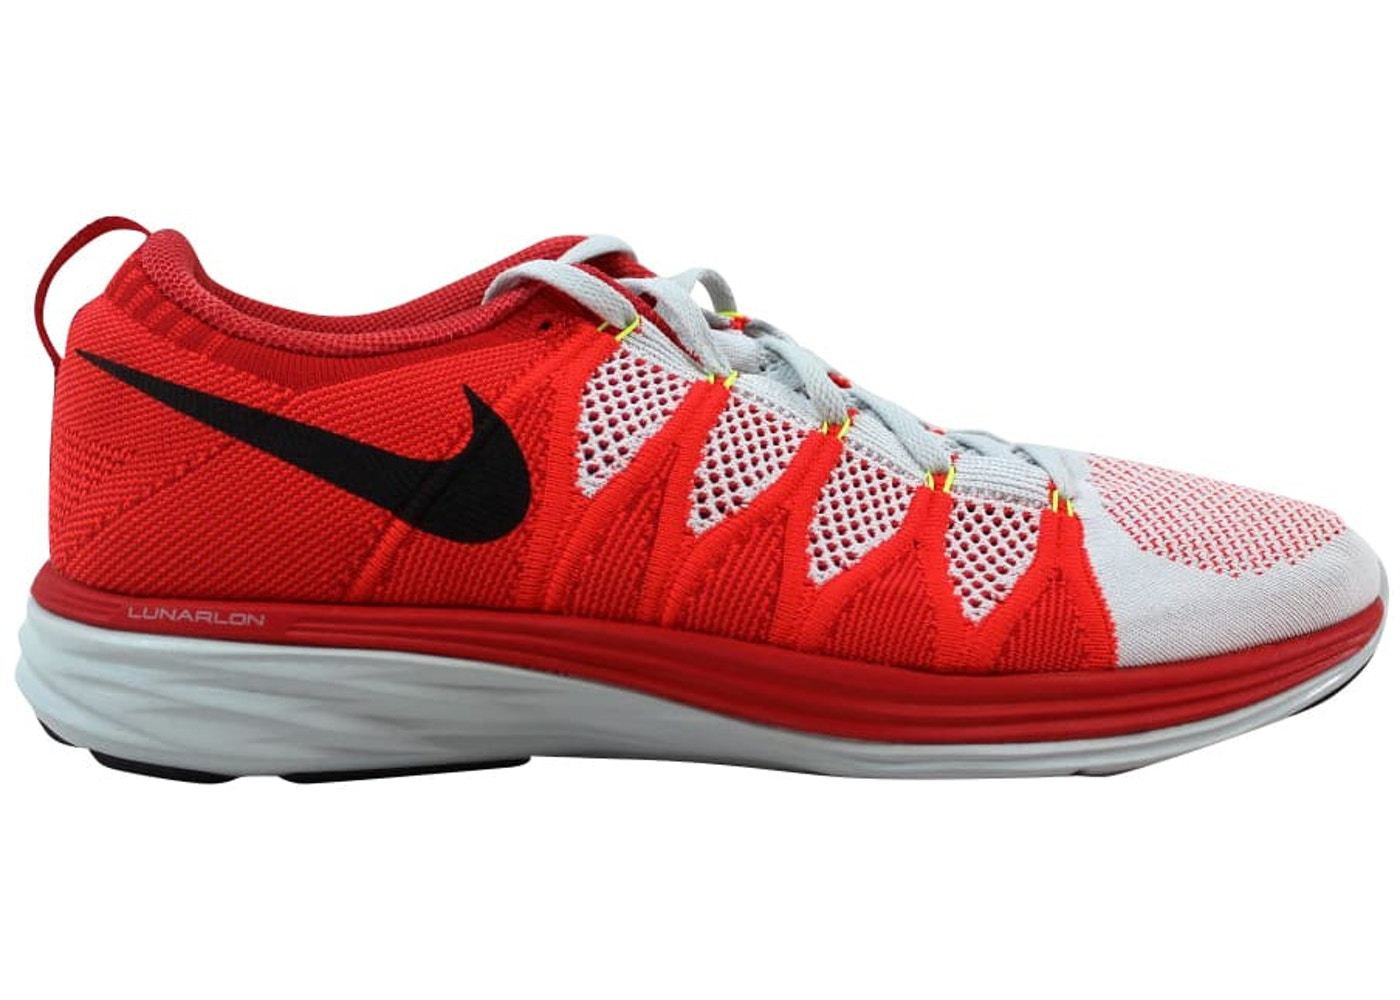 newest f304c 060f9 Sell. or Ask. Size  8.5. View All Bids. Nike Flyknit Lunar2 Pure Platinum  Black-Bright Crimson-University Red